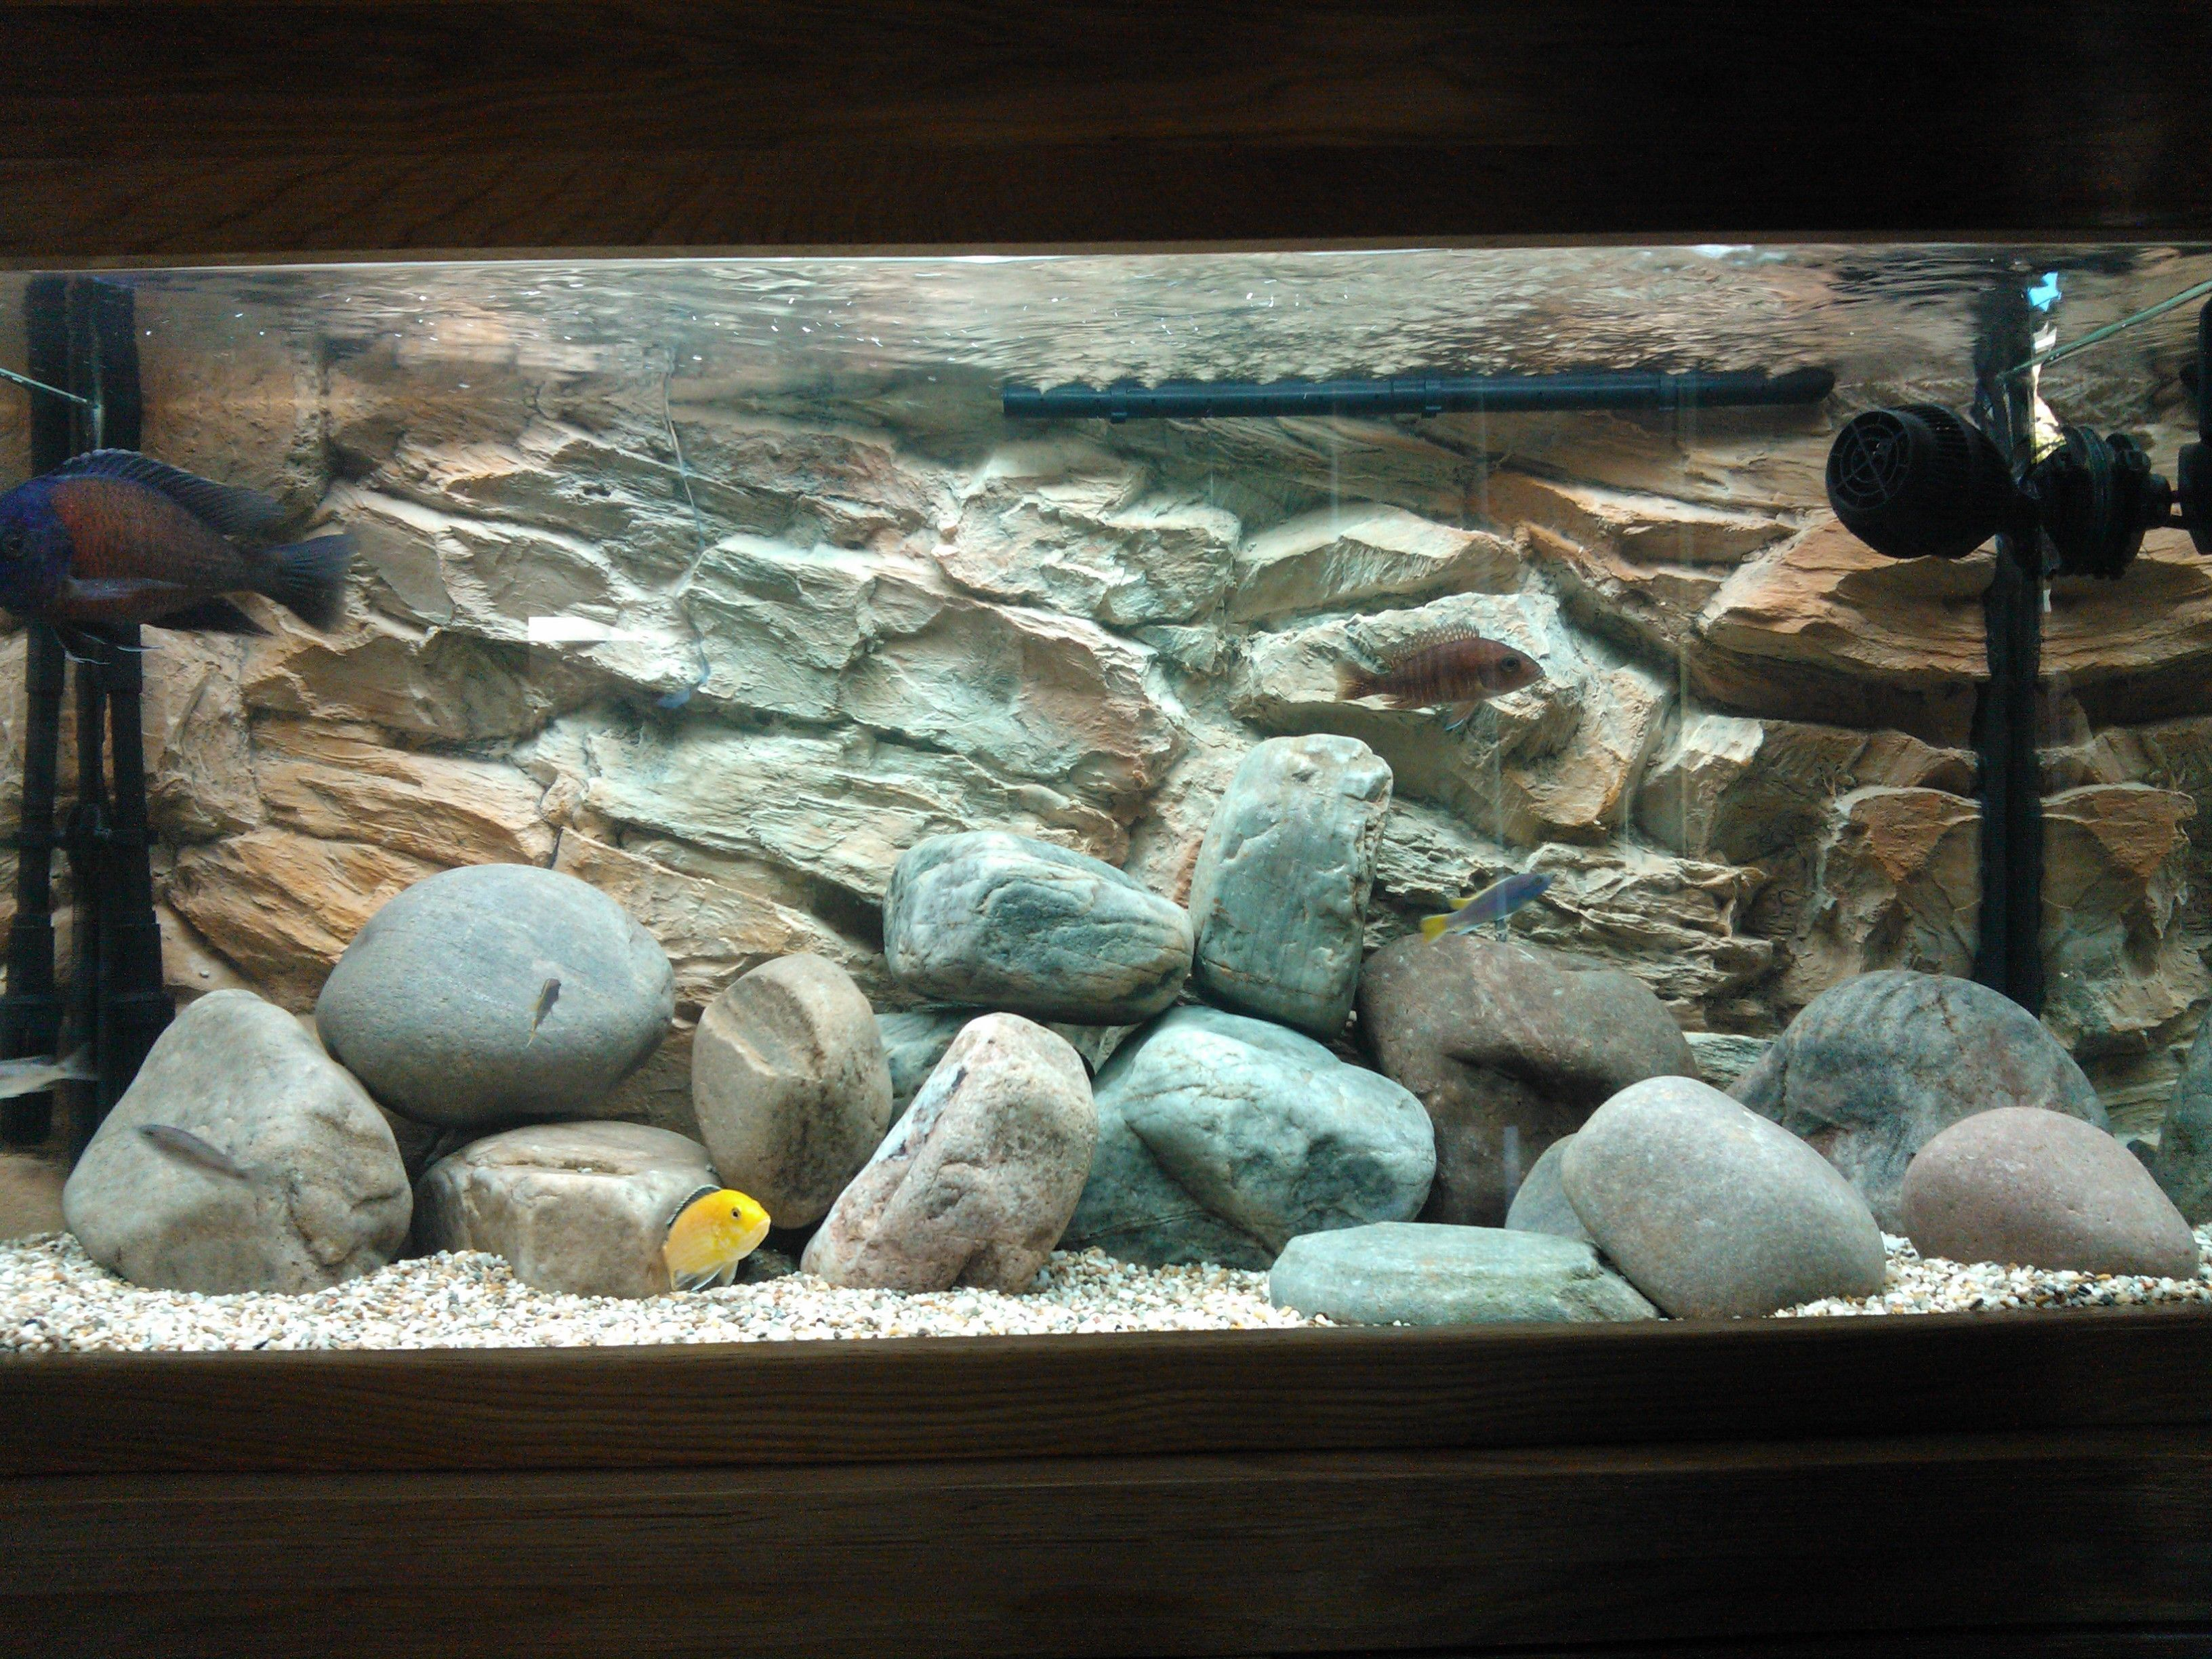 Another Cool Decoration Idea To Match Natural River Boulders With